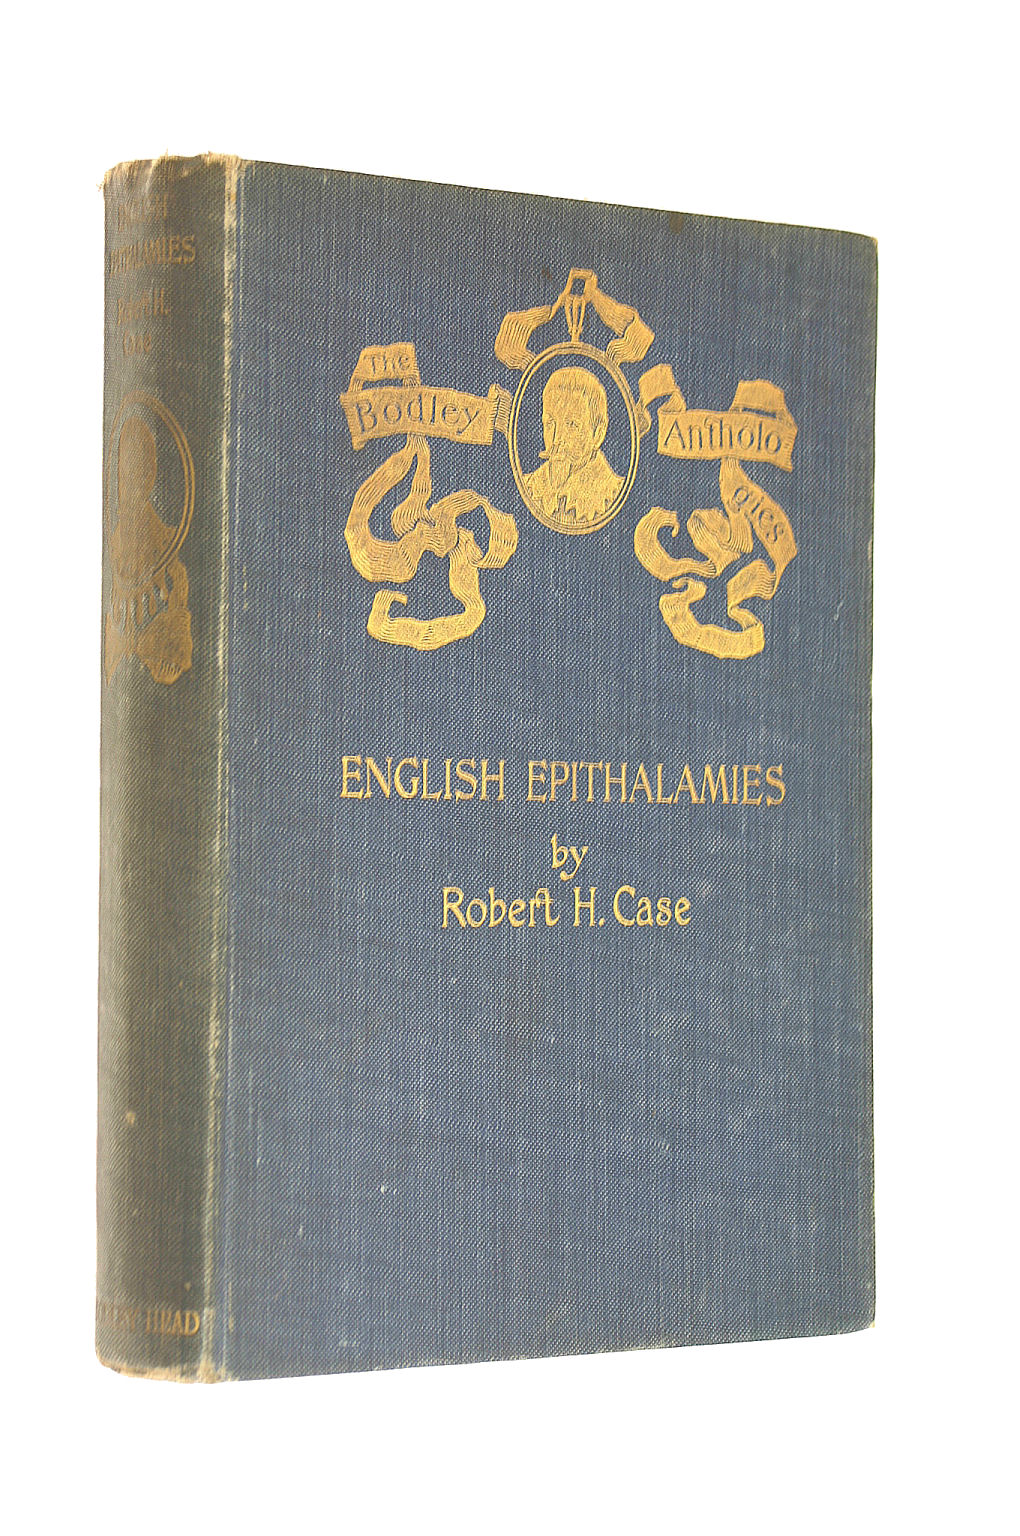 Image for English Epithalamies